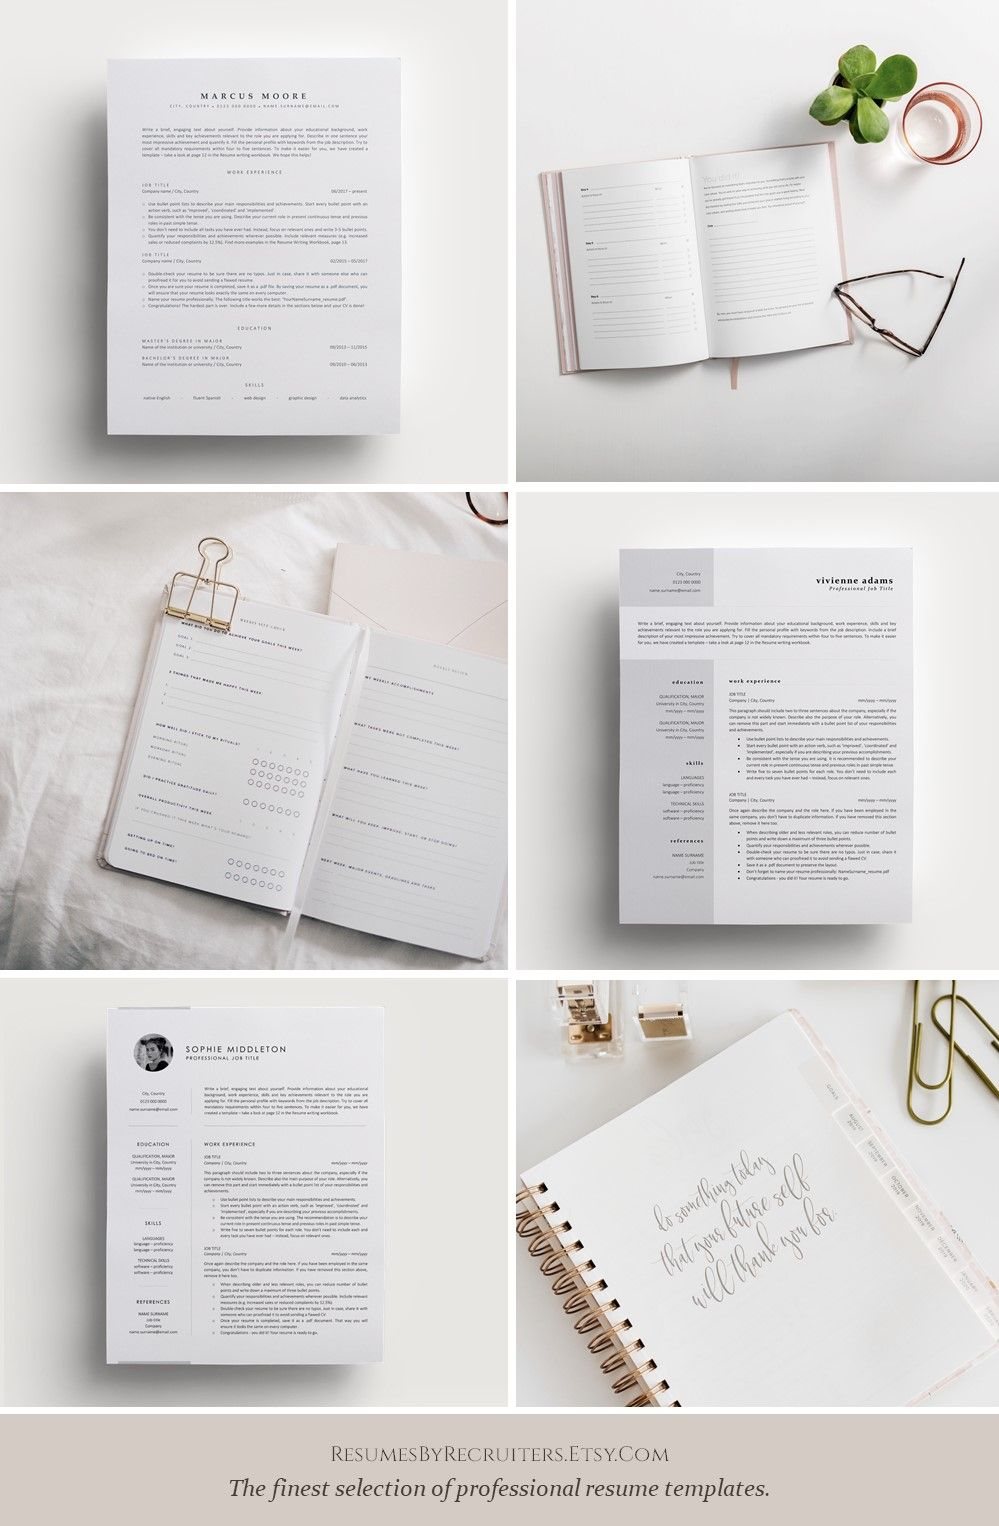 Perfect Resume Templates, Best CV and Cover Letter